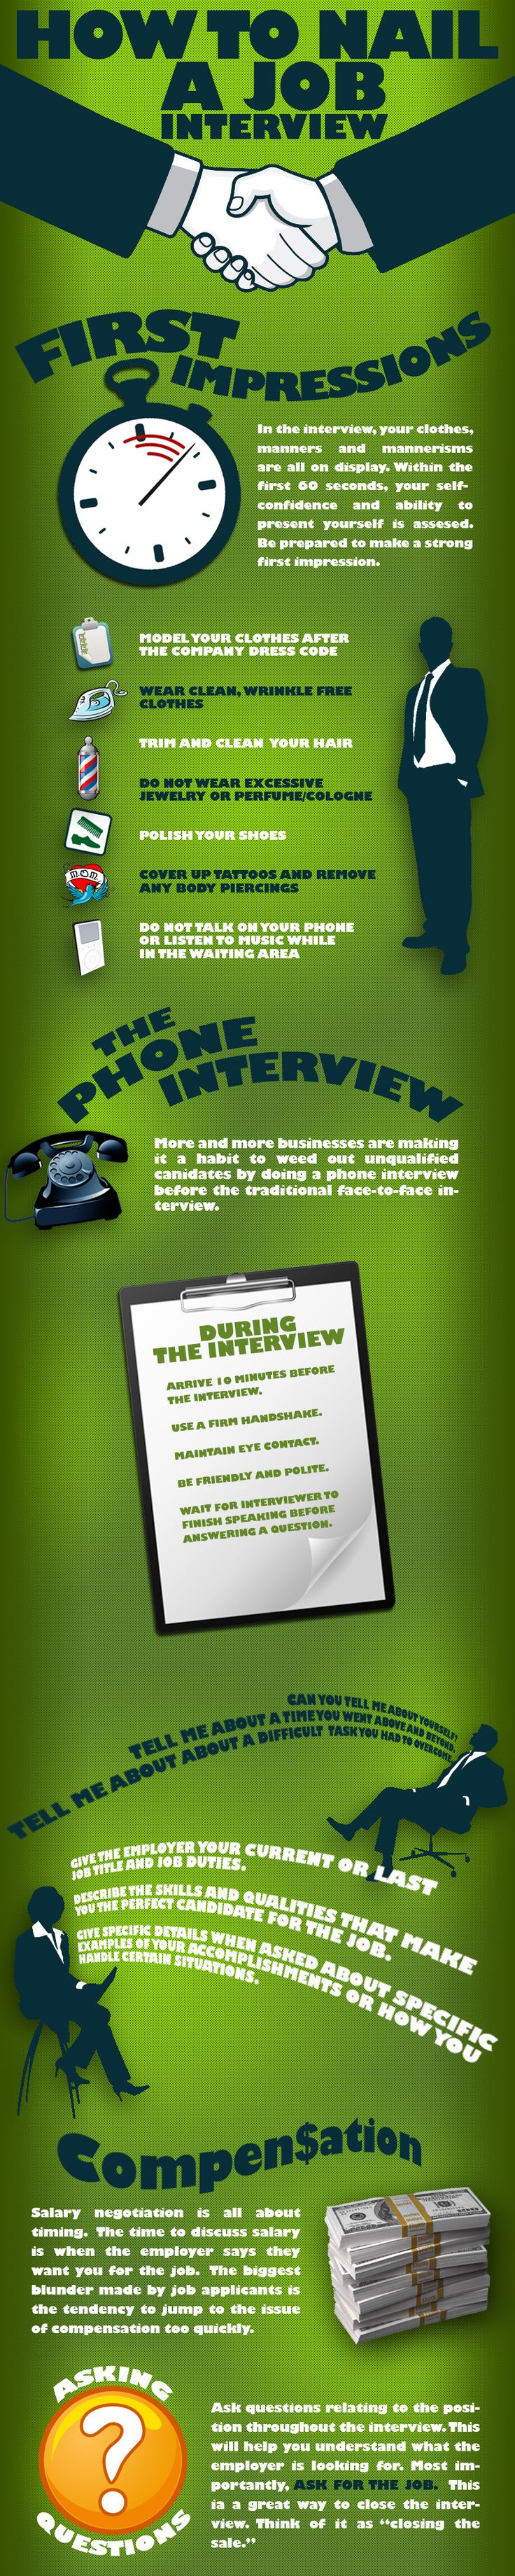 How to nail a job interview #infographic